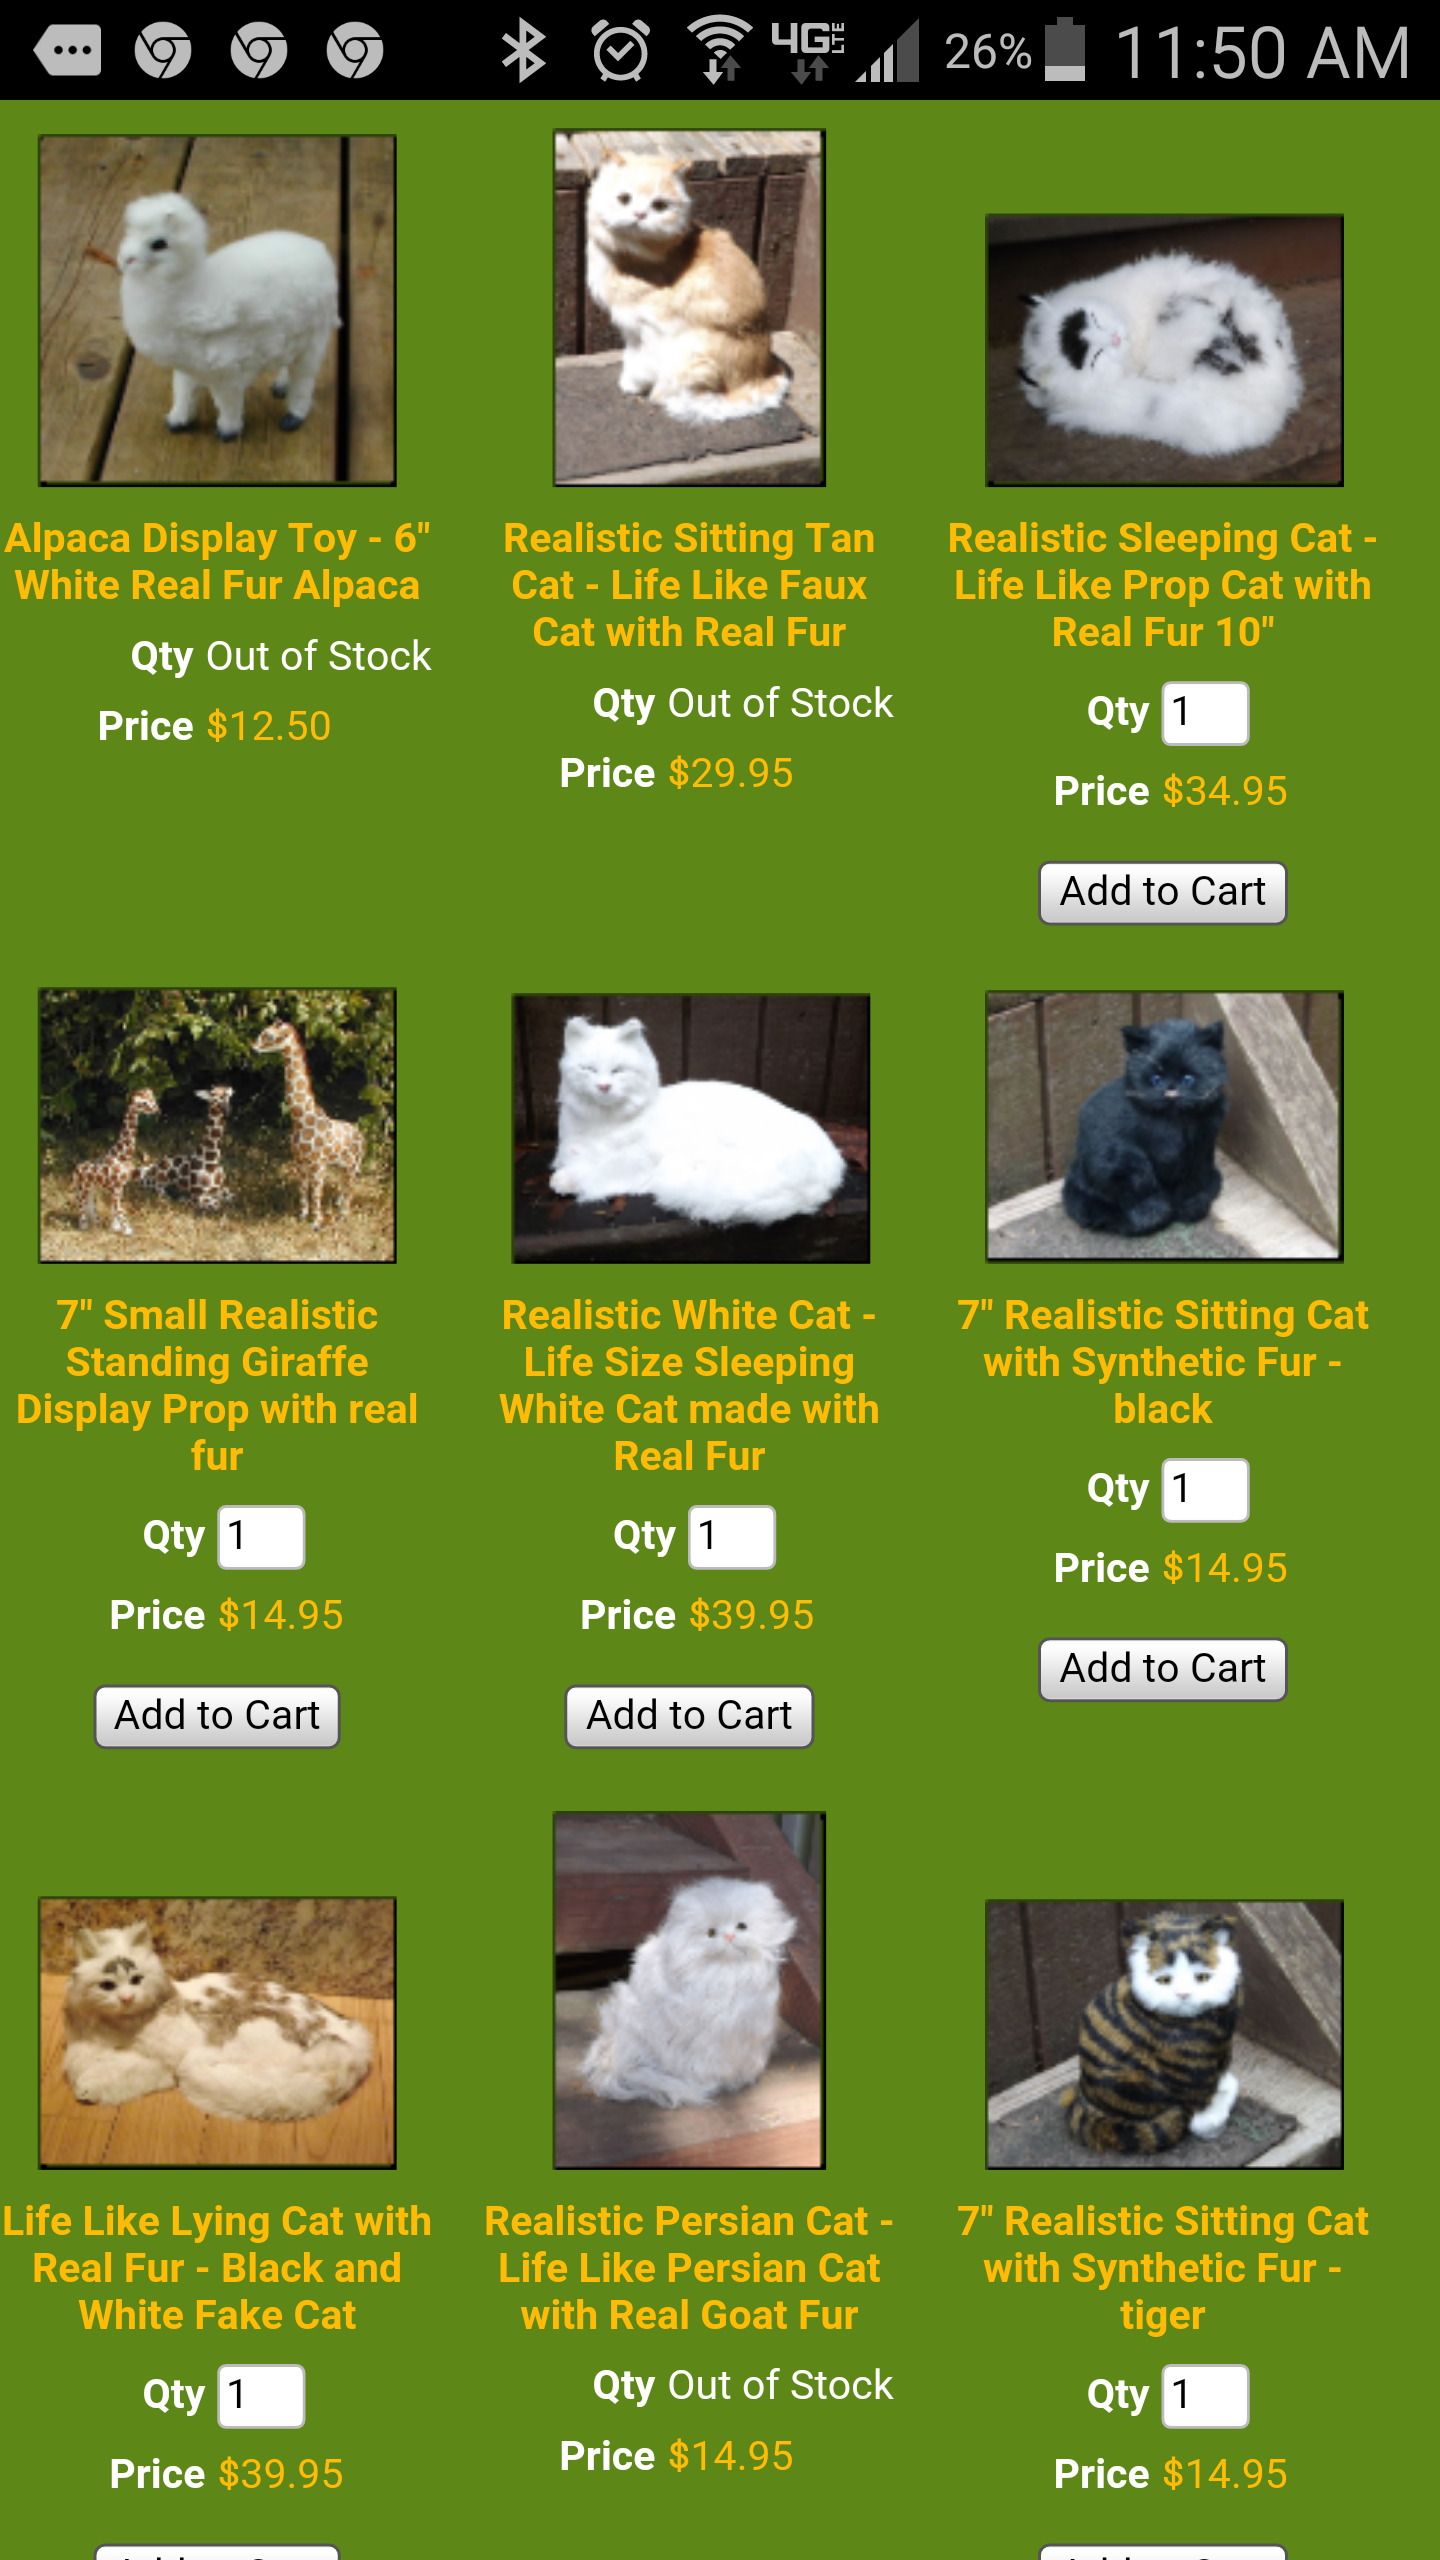 Toy store sells stuffed toys made with real fur – The